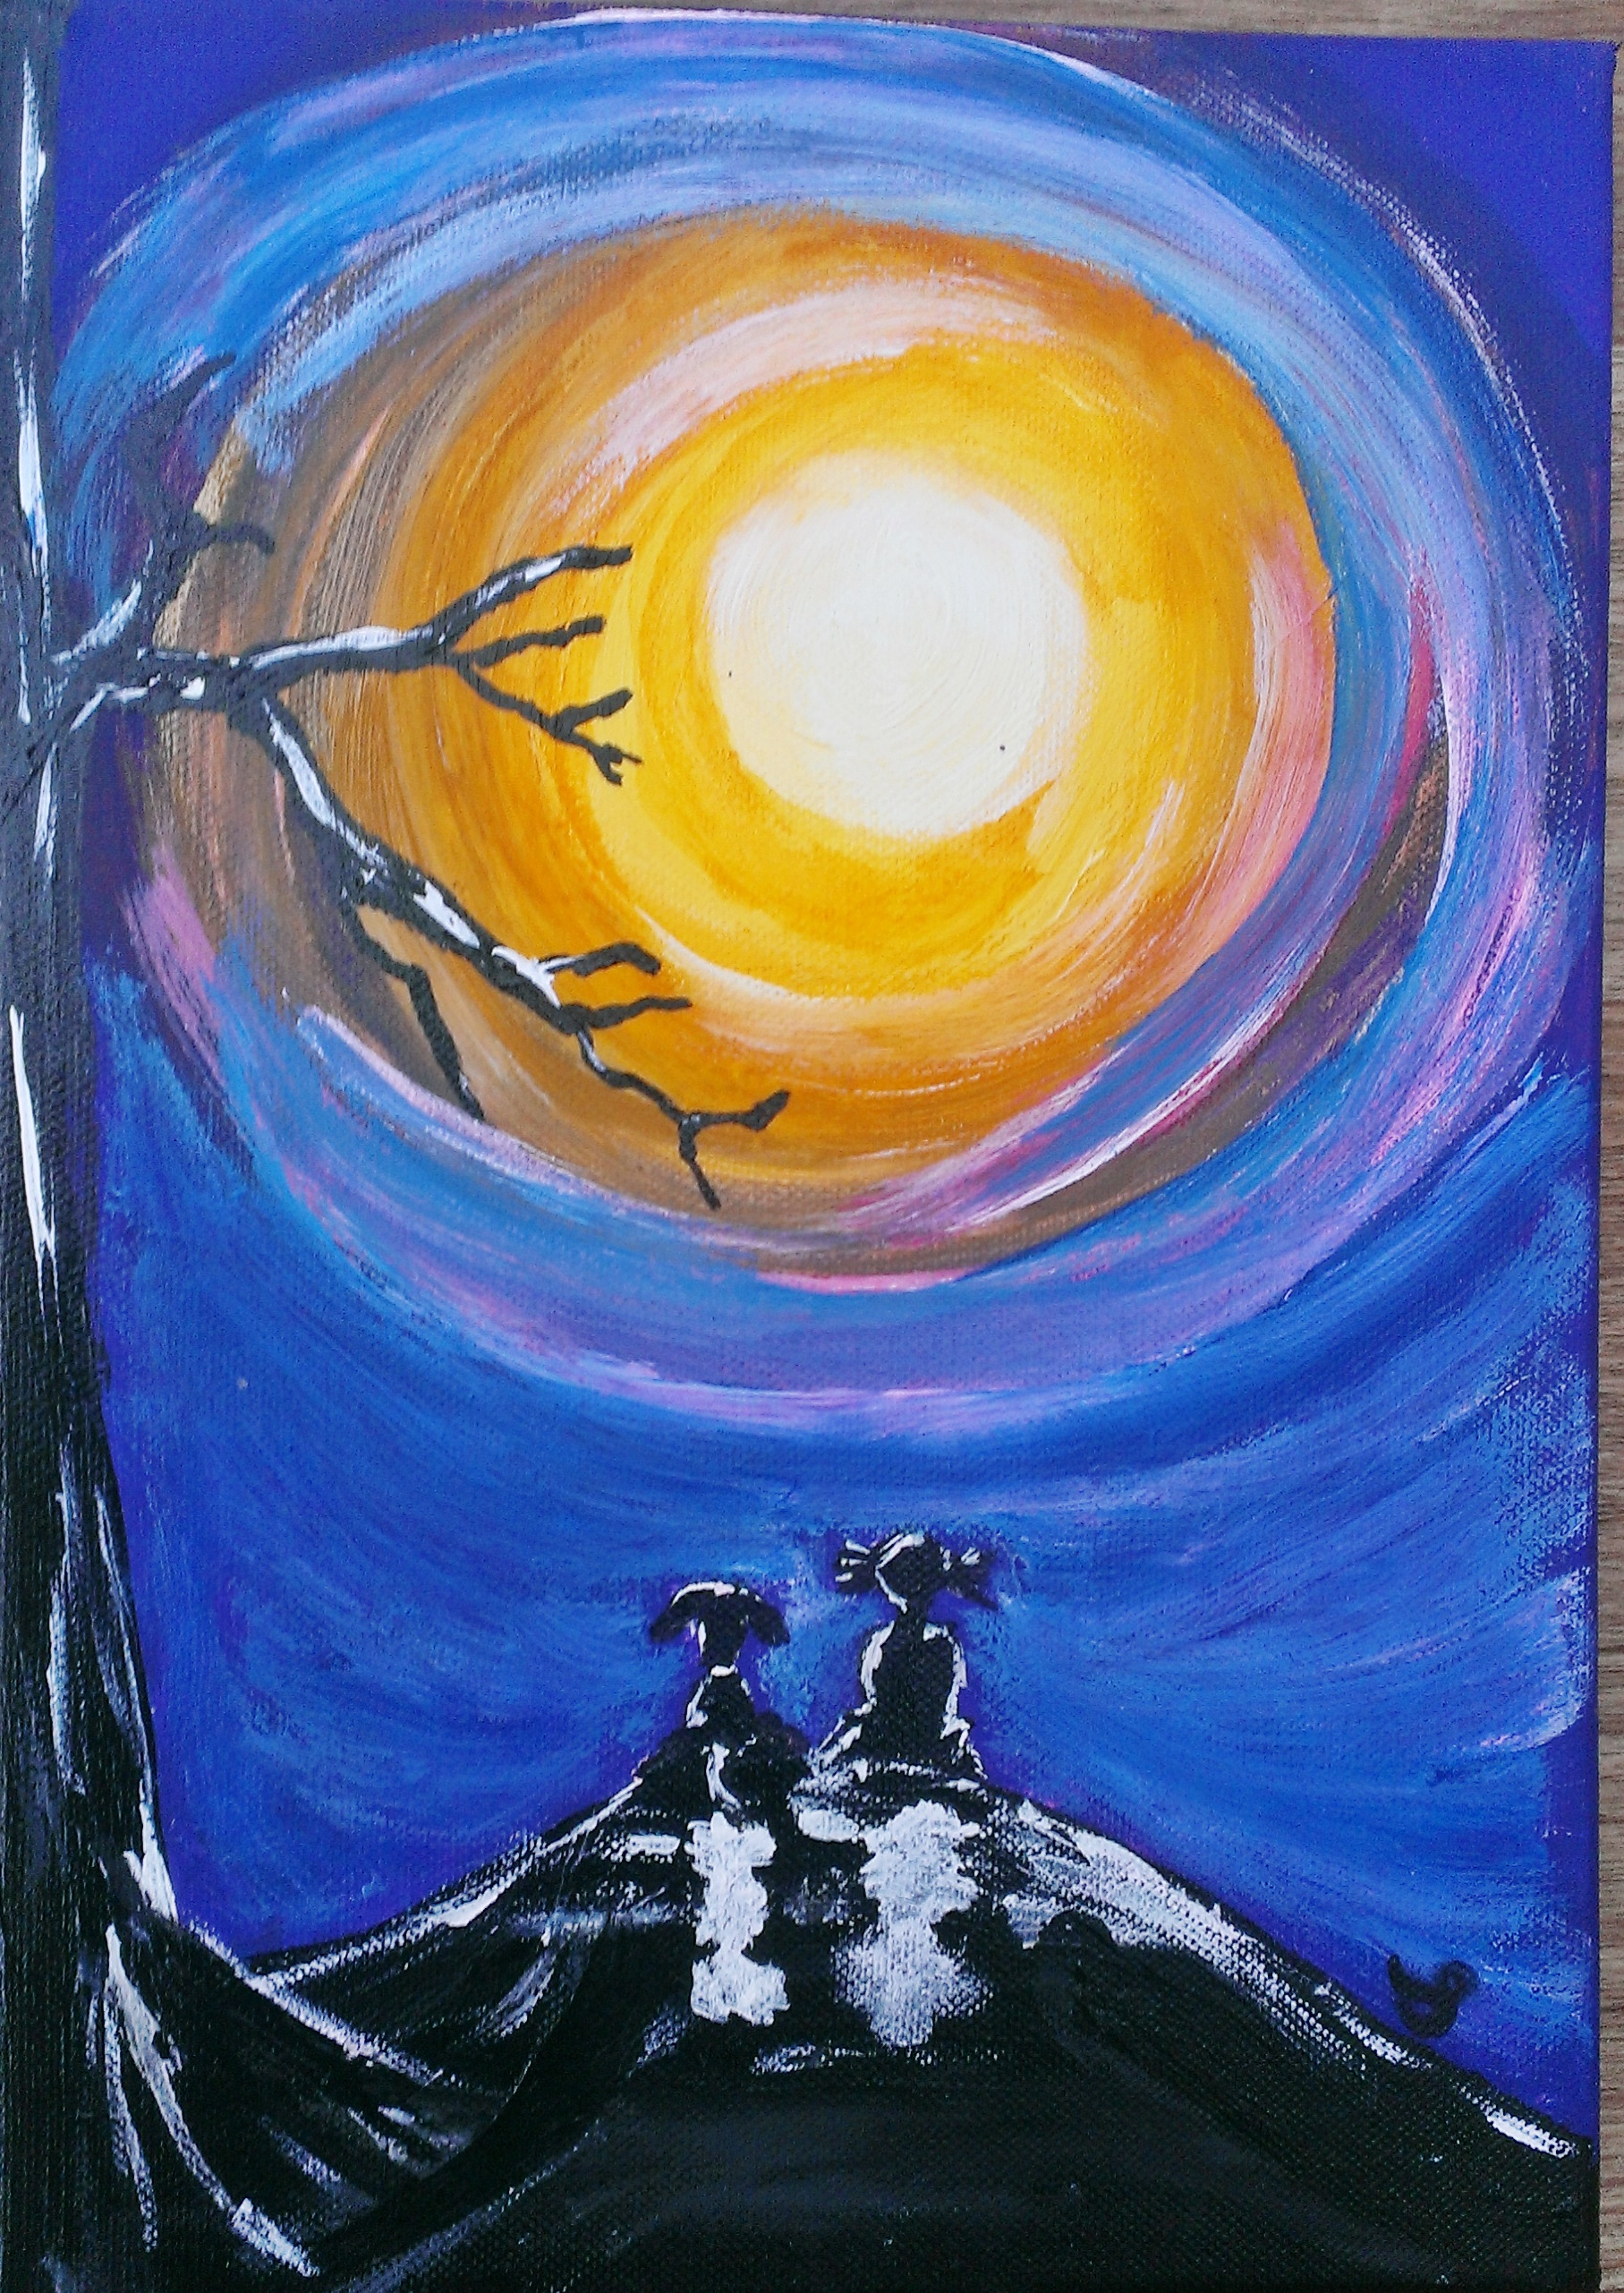 MY BEST FRIEND GIRL AND DOG LOOKING AT MOON SURREAL ACRYLICS ORIGINAL PAINTING